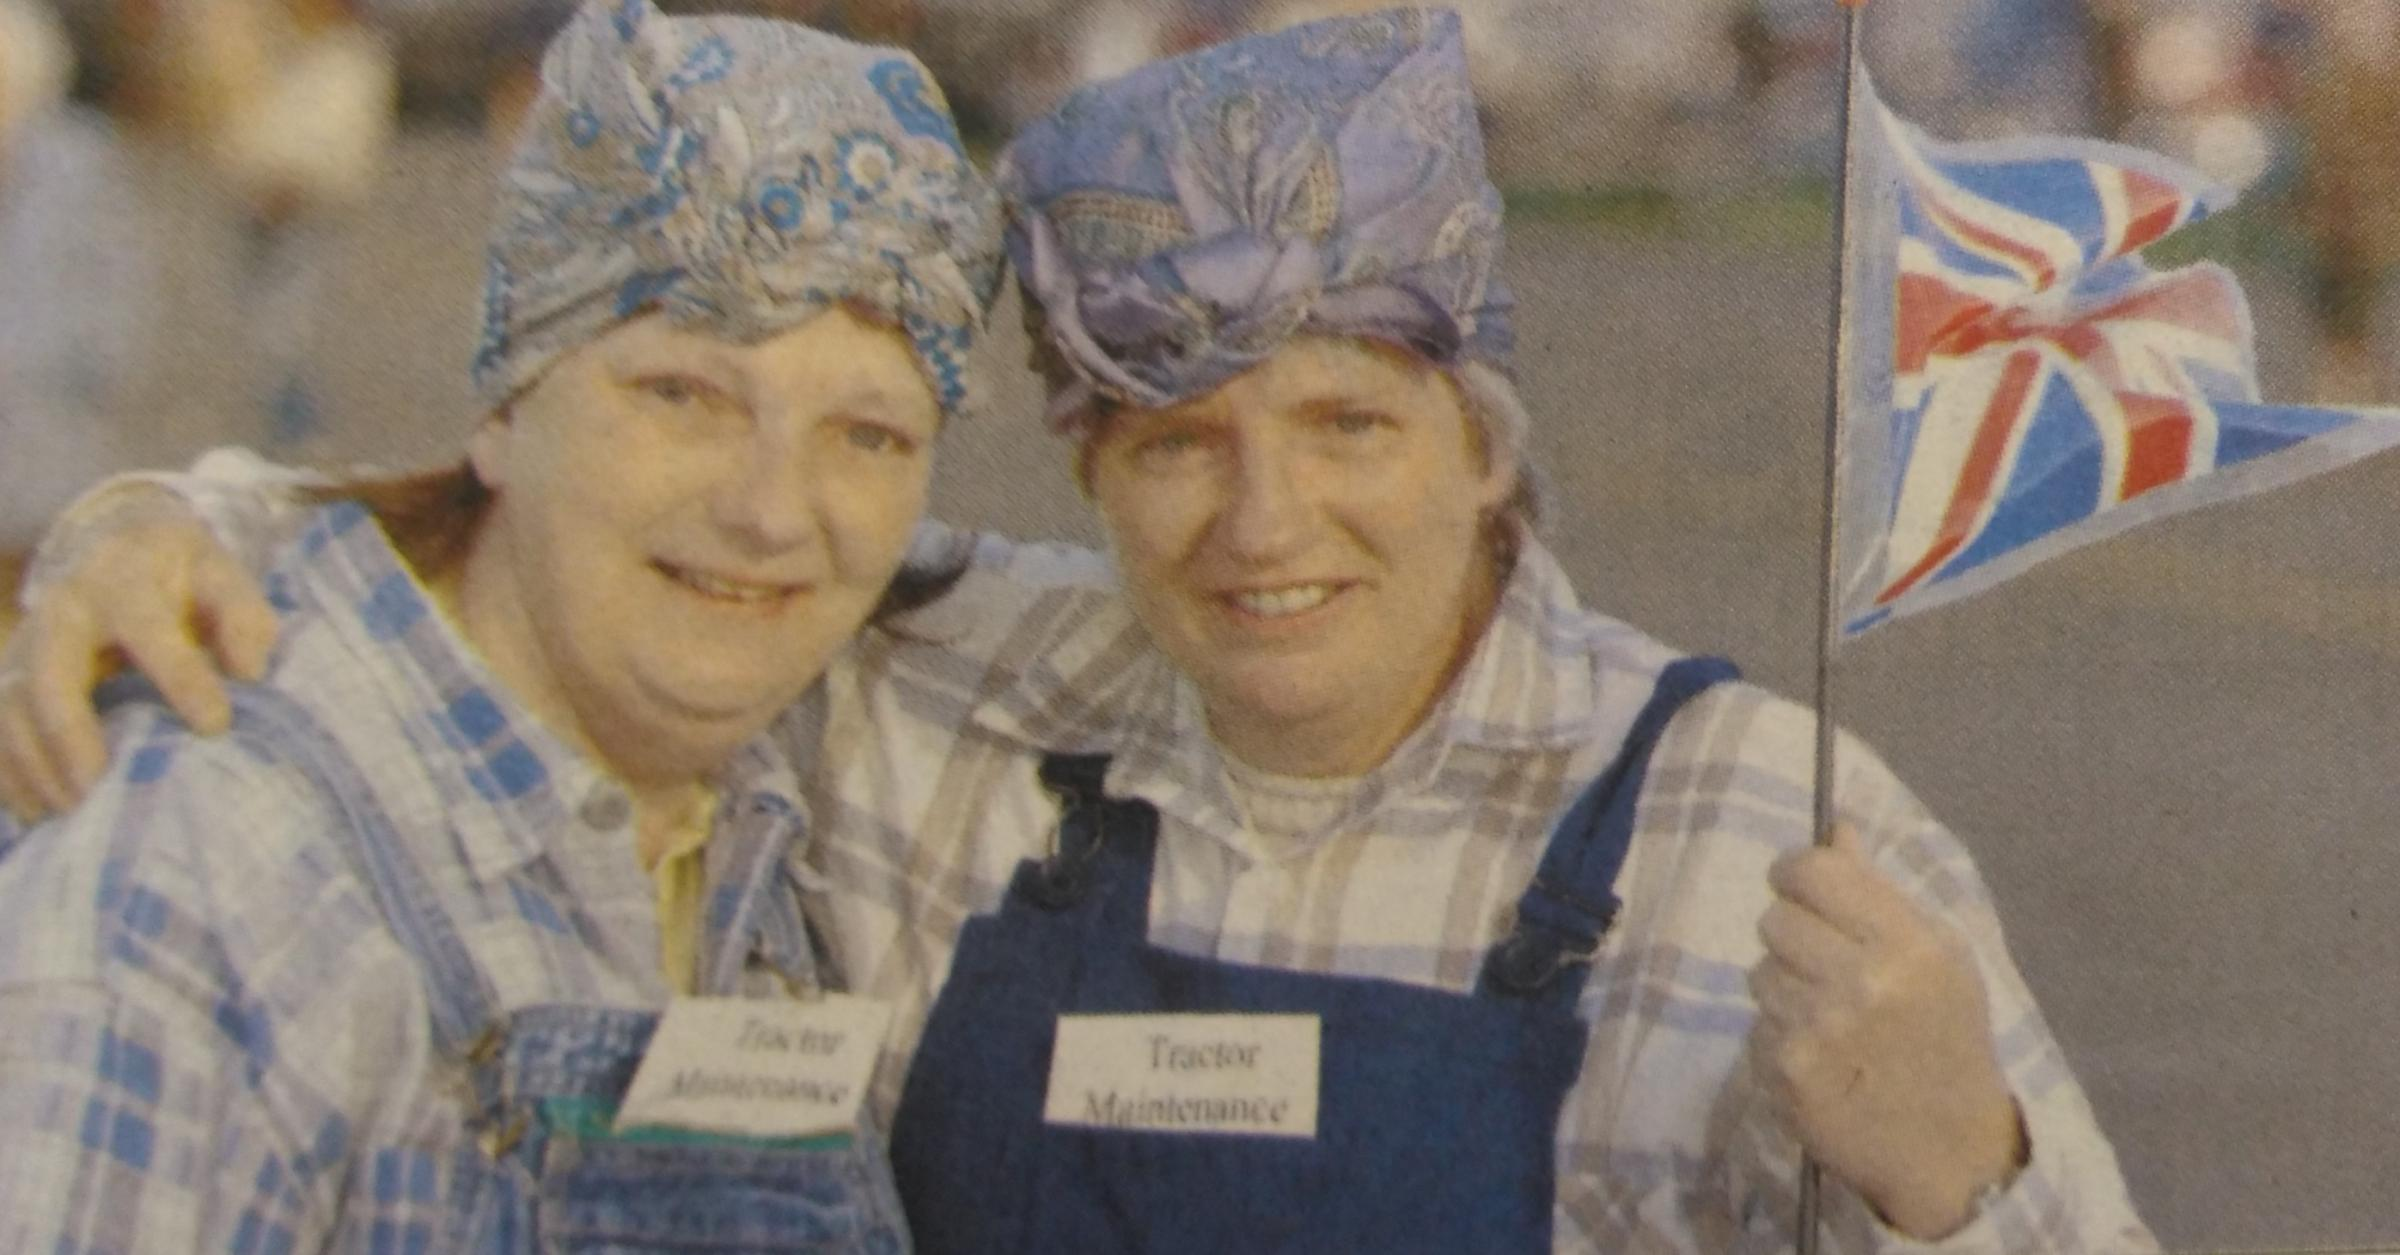 Sisters Elizabeth Russell and Wendy Taylor are pictured here, proudly dressed as Land Girls.